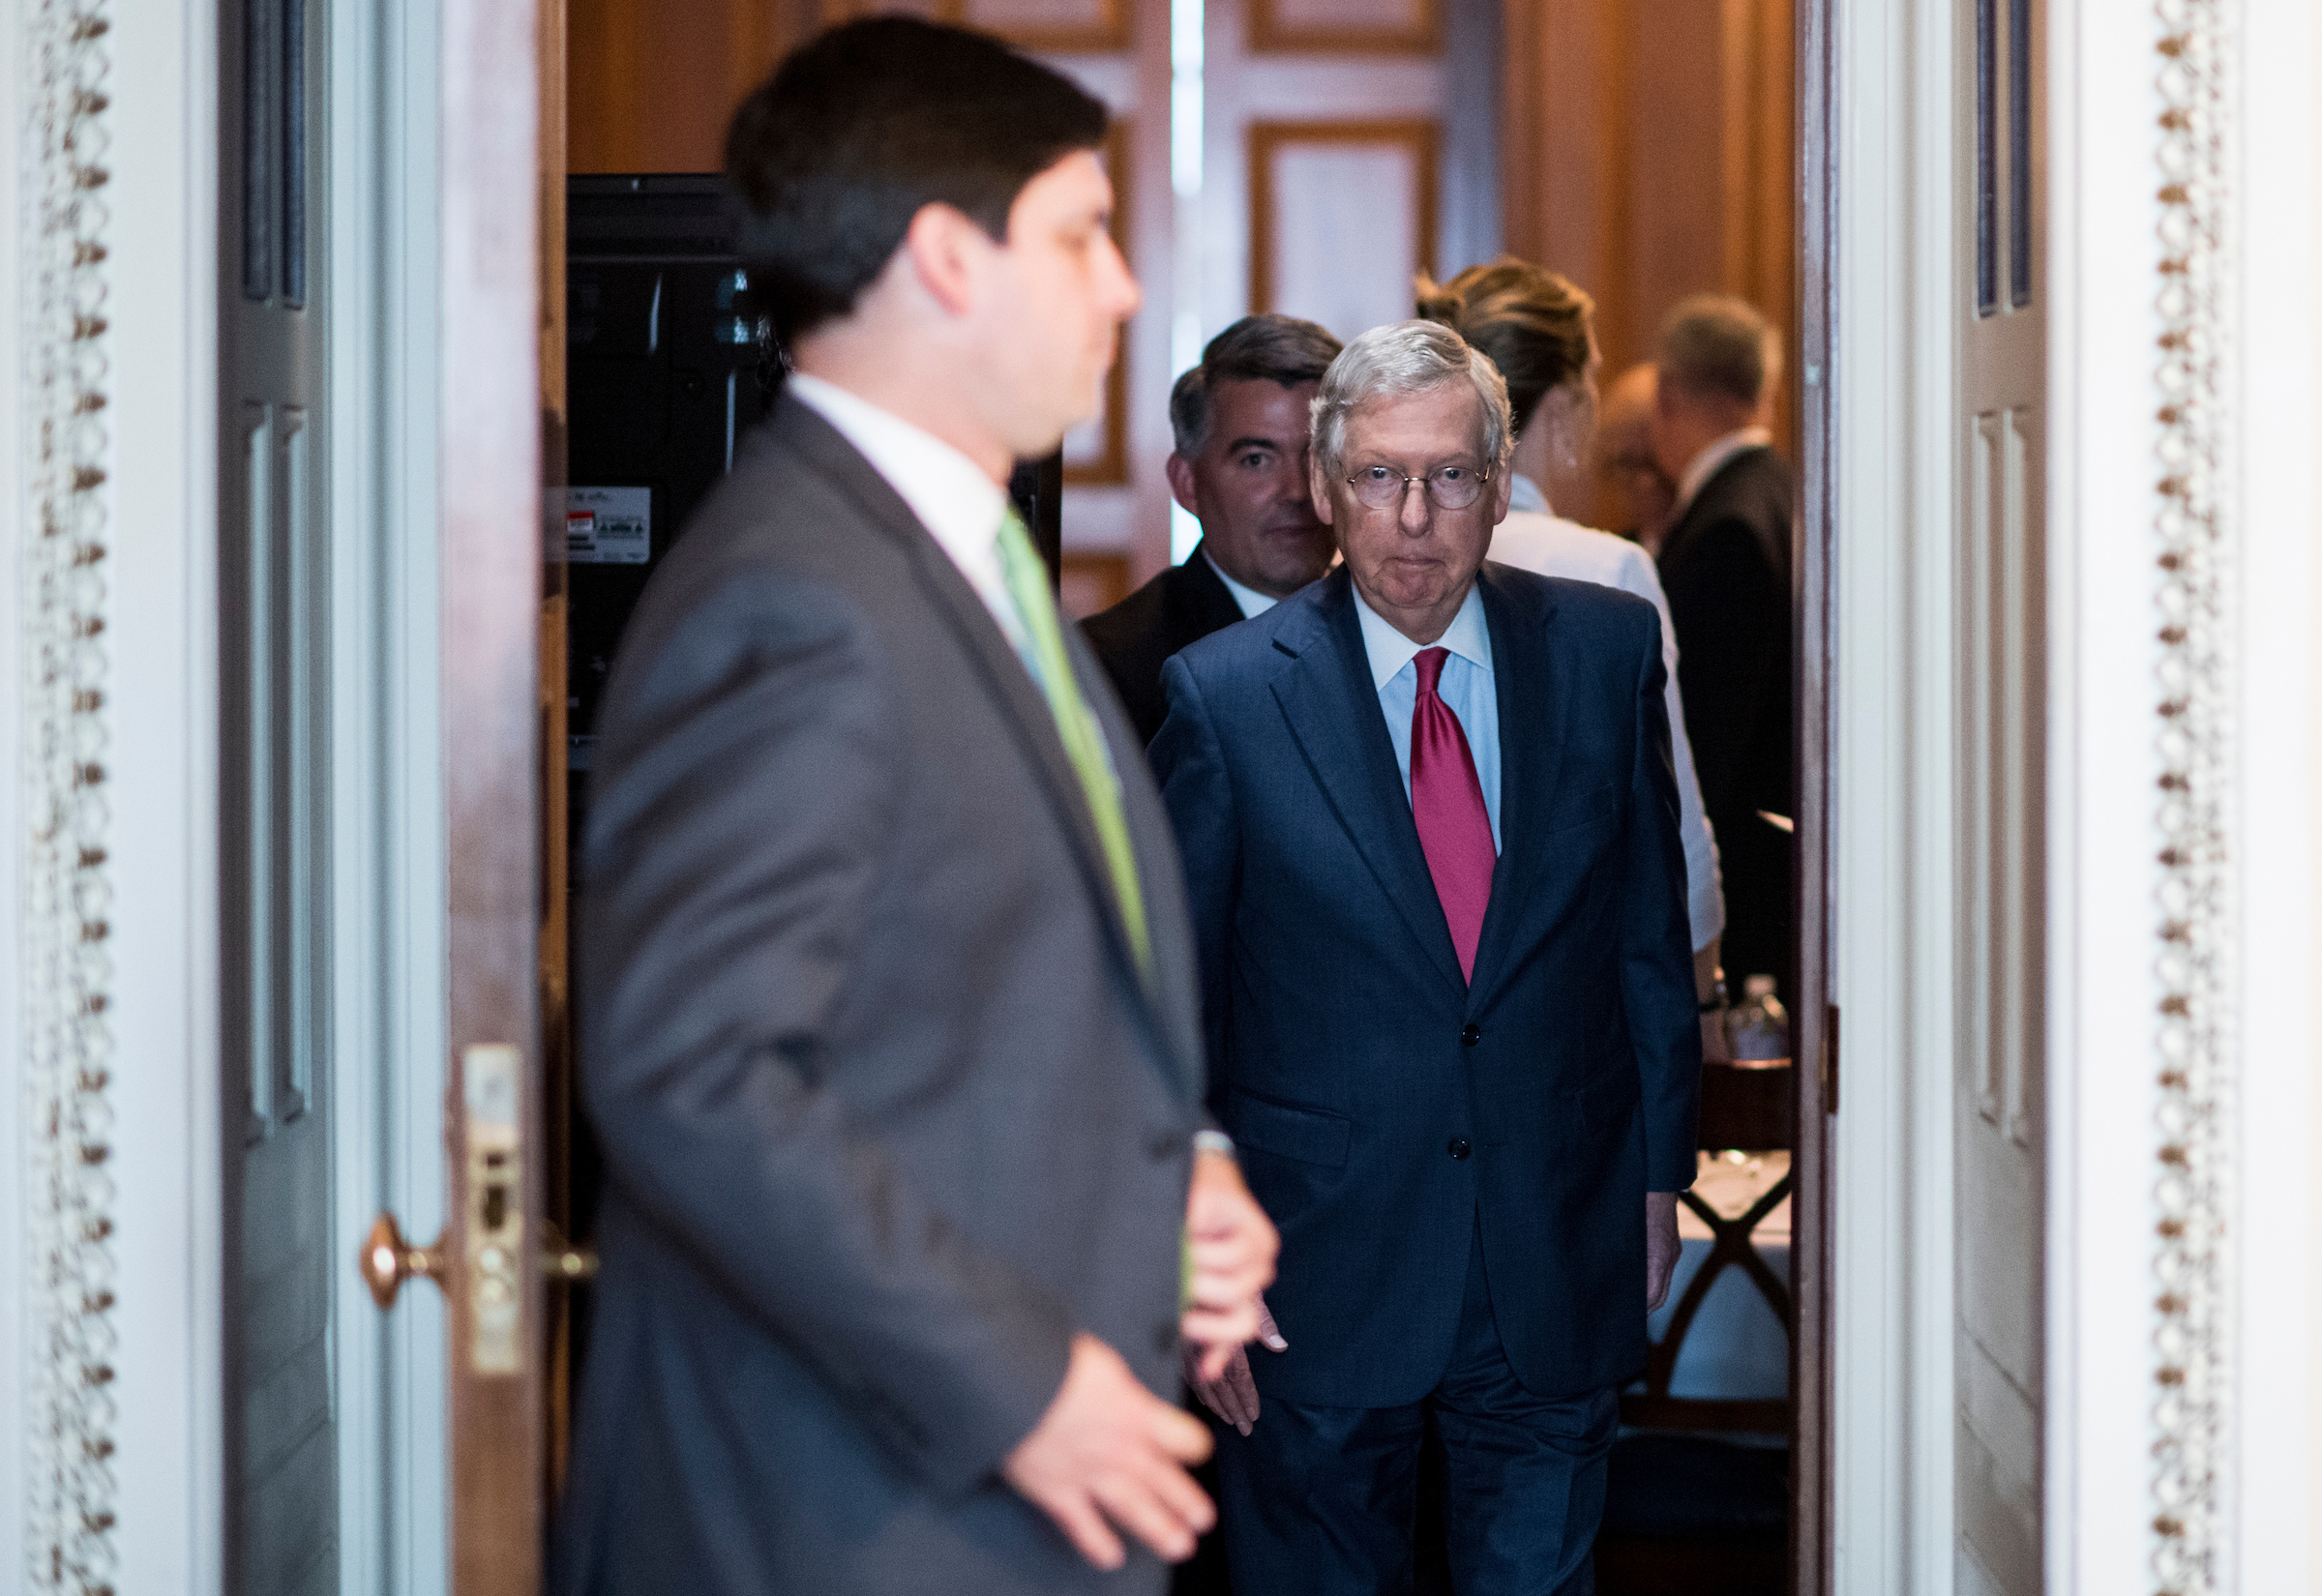 UNITED STATES - MAY 16: Senate Majority Leader Mitch McConnell, R-Ky., followed by Sen. Cory Gardner, R-Colo., walks to the podium in the Ohio Clock Corridor to face reporters after the Senate Republicans' policy lunch on Tuesday, May 16, 2017. (Photo By Bill Clark/CQ Roll Call)